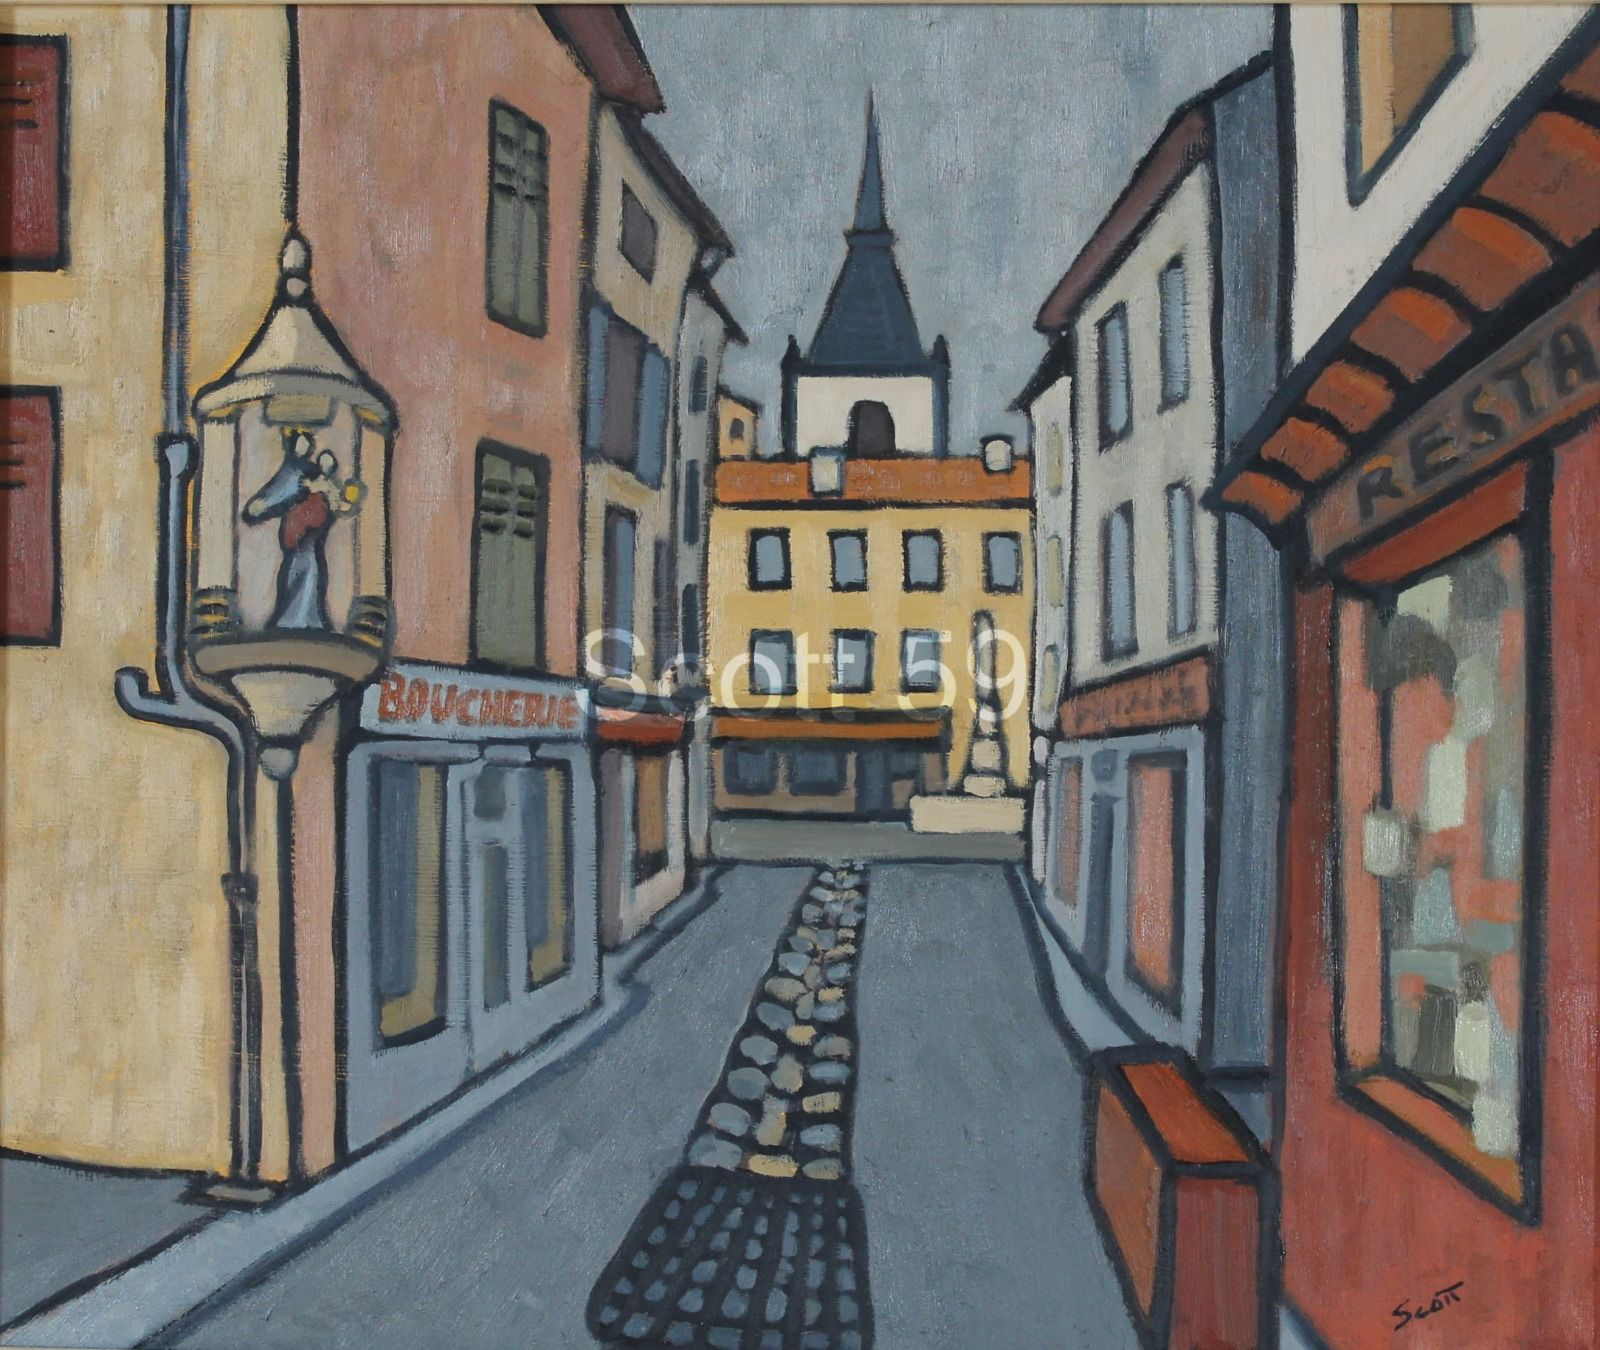 Rue de Sainte-Marie, Craponne-sur-Arzon (Oil on board, 61 x 51cm)